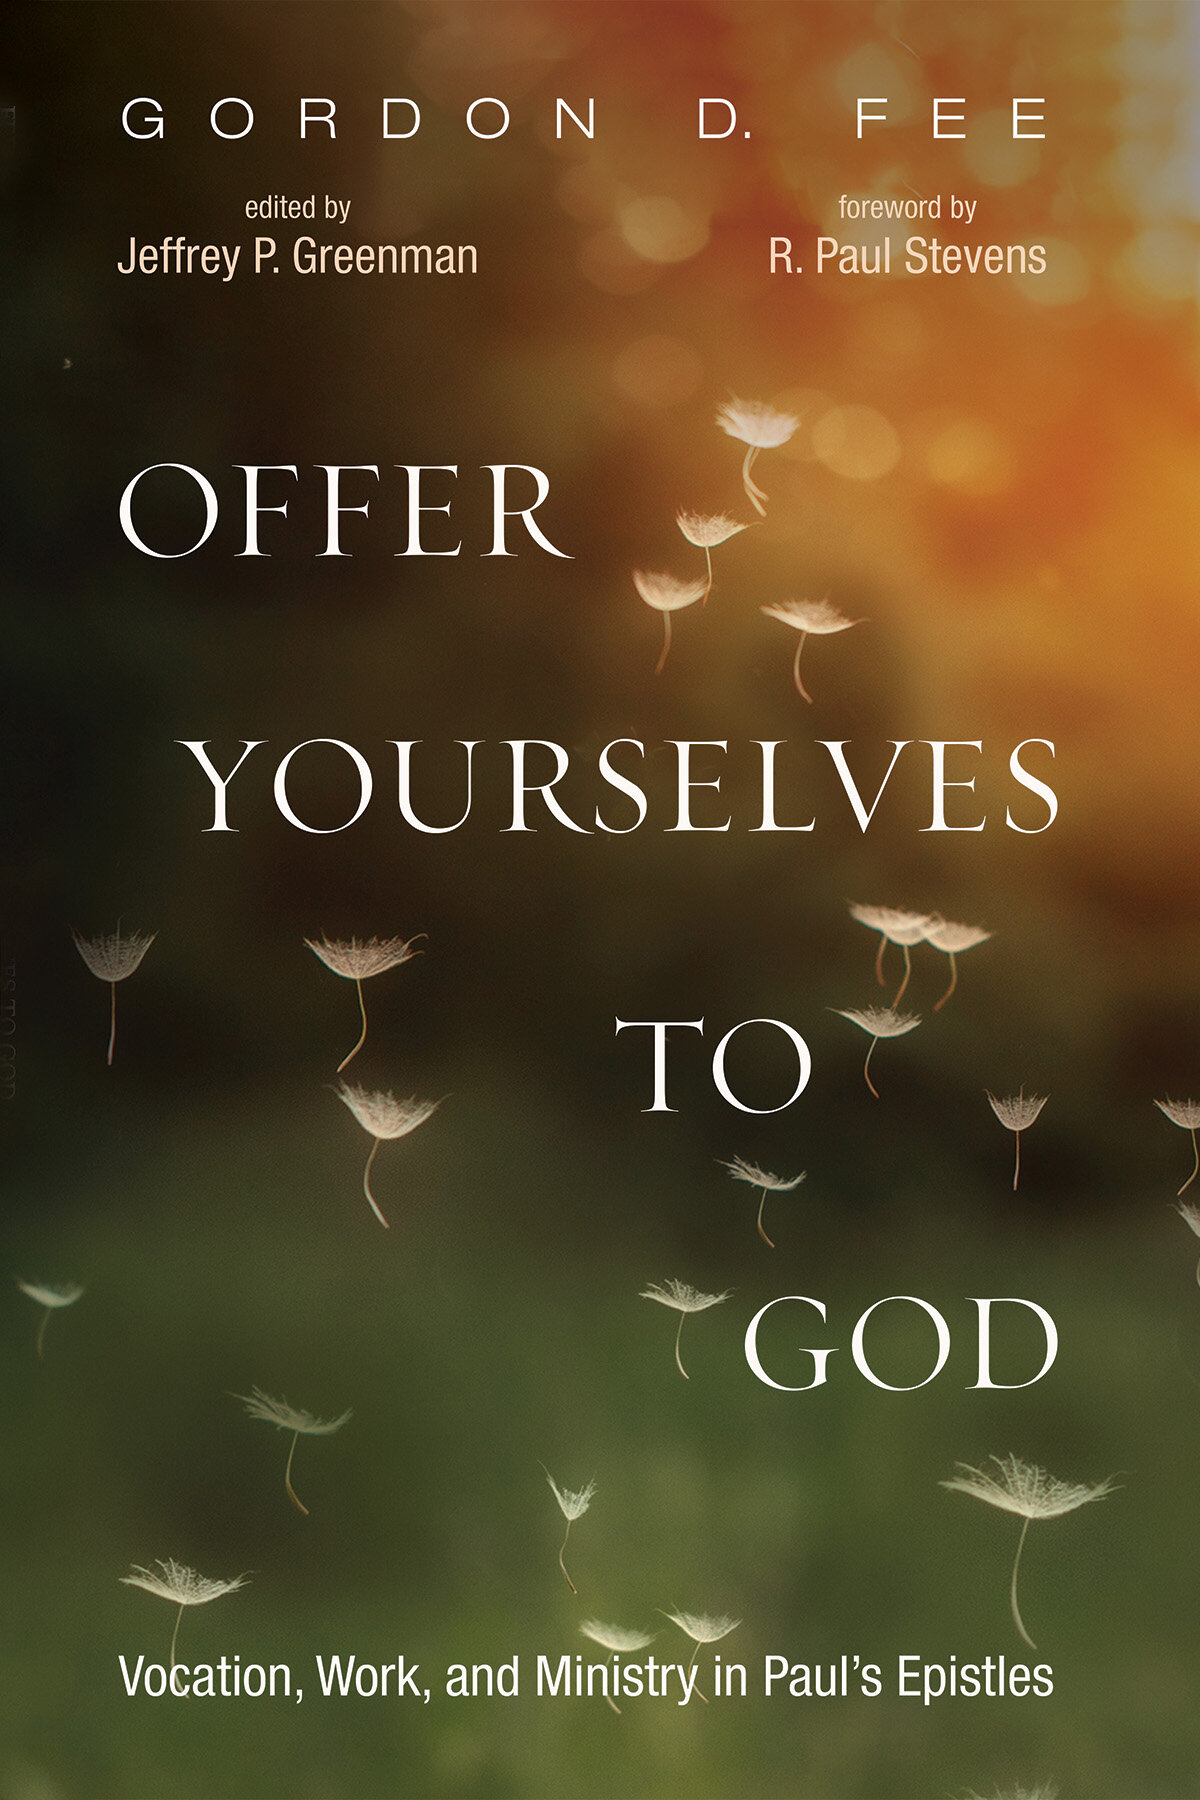 Offer Yourselves to God: Vocation, Work, and Ministry in Paul's Epistles